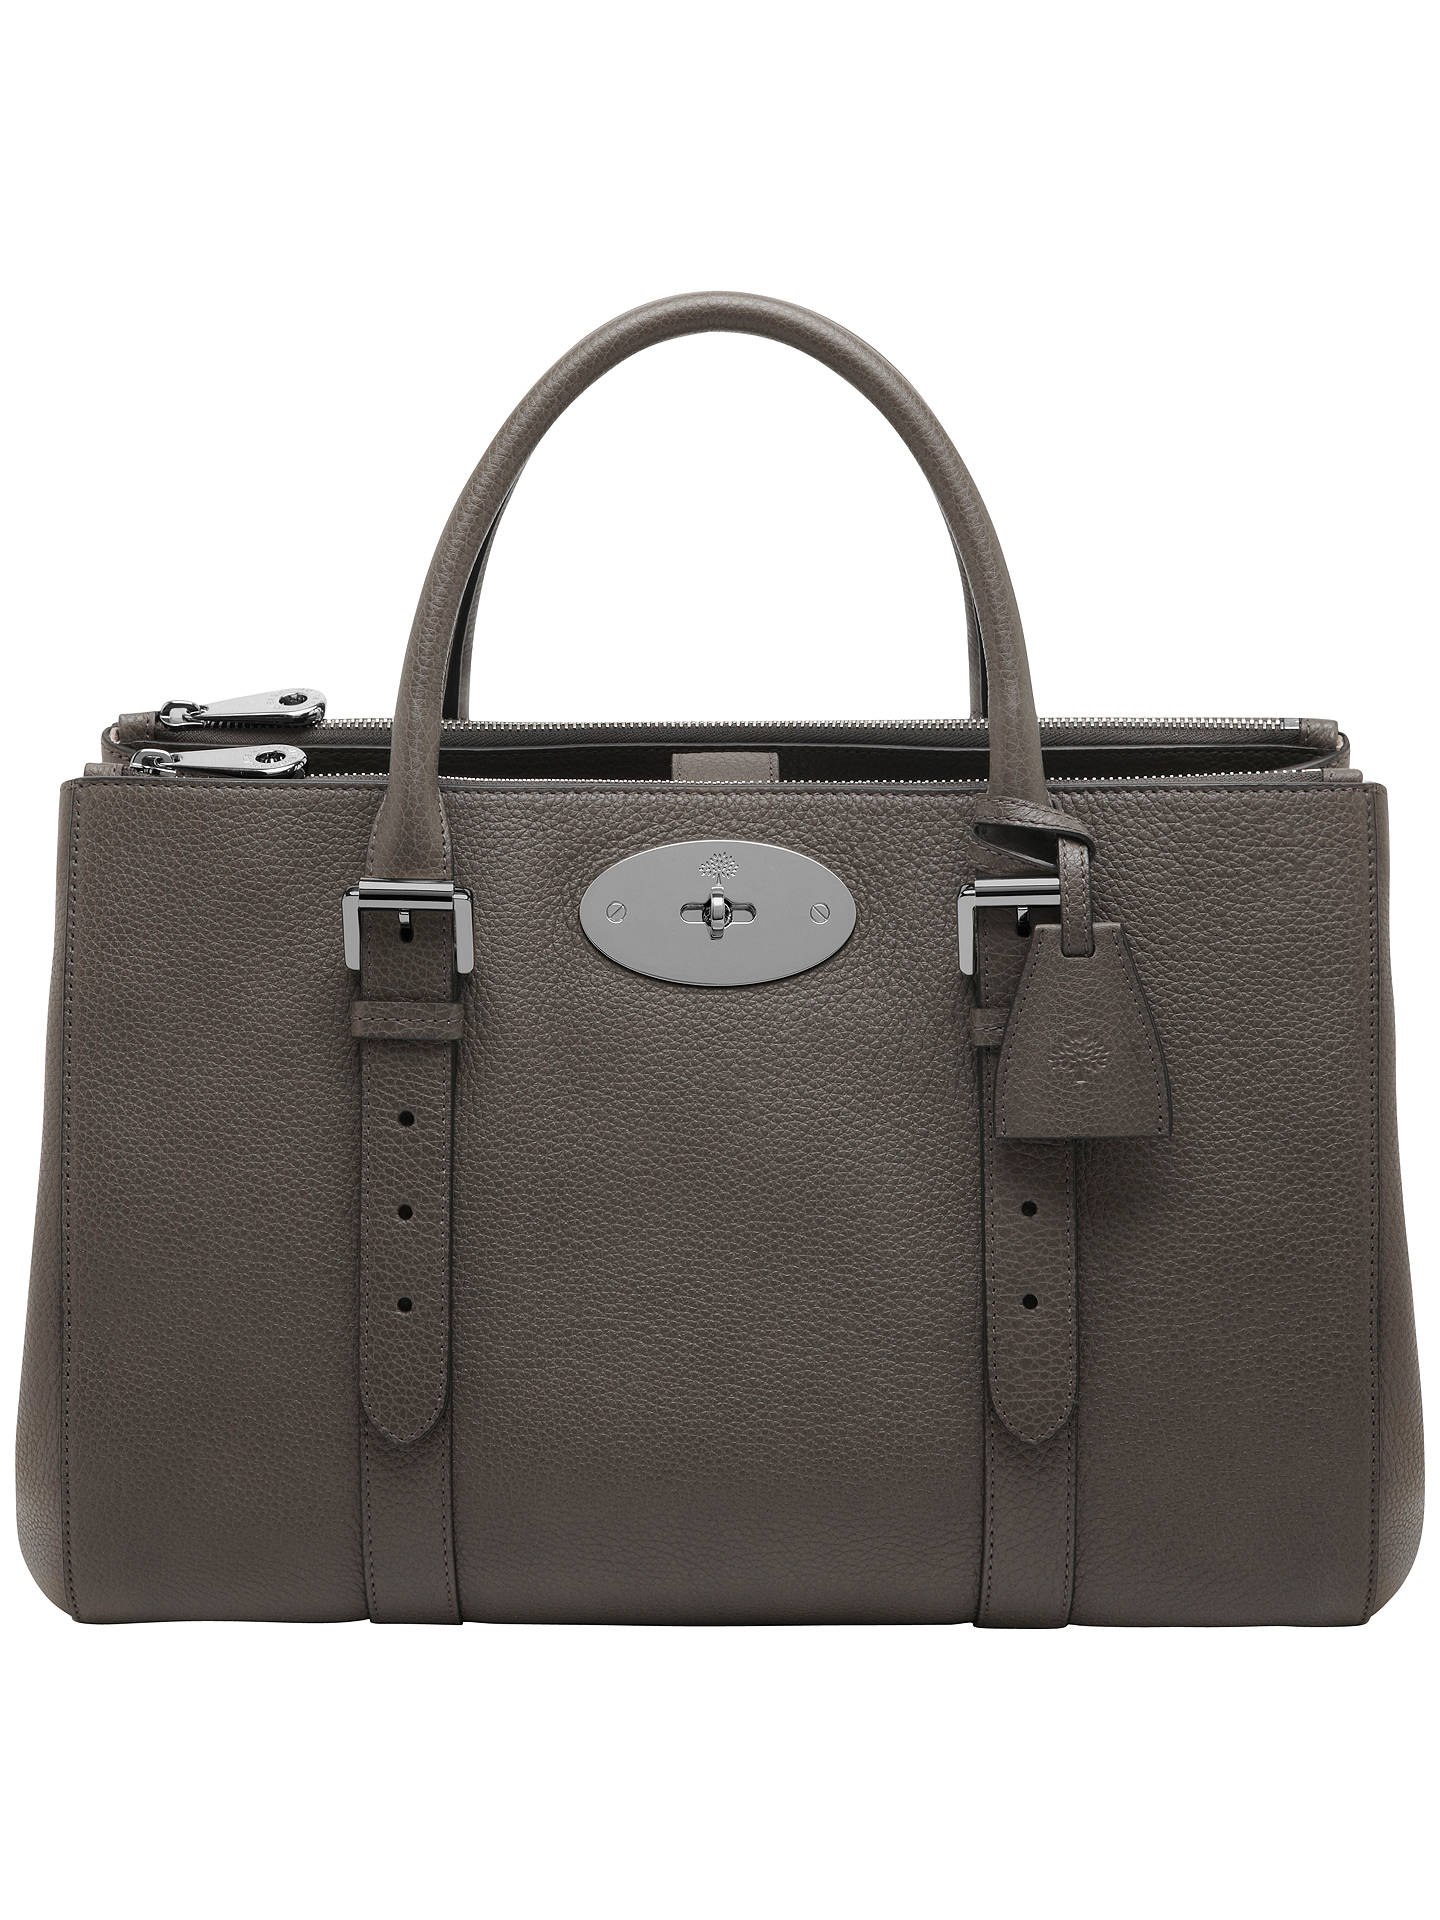 db9dc93a75c Buy Mulberry Bayswater Leather Double Zip Tote Bag, Mole Grey Online at  johnlewis.com ...